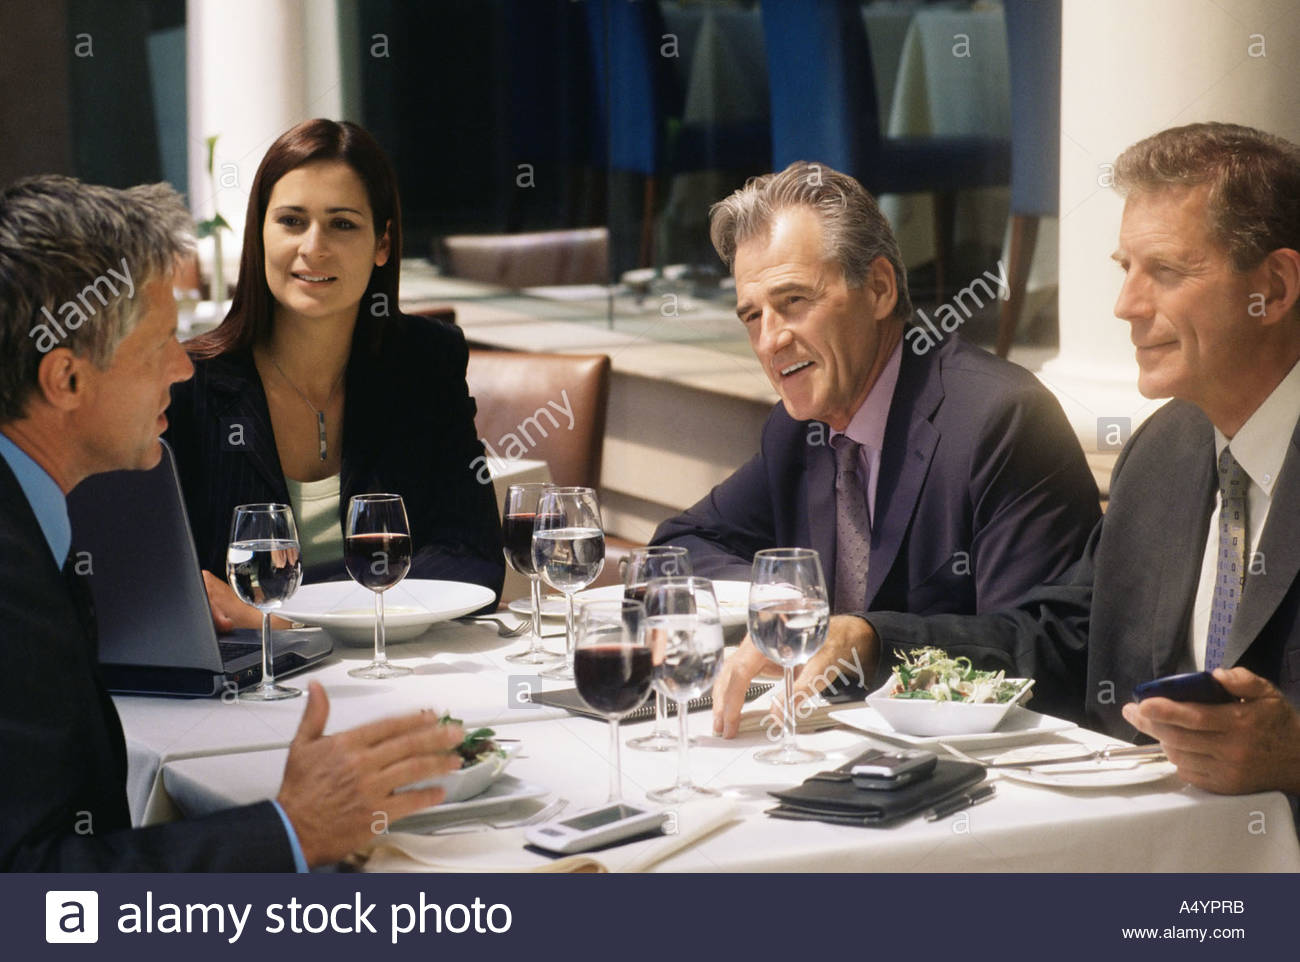 Business people in a restaurant Stock Photo